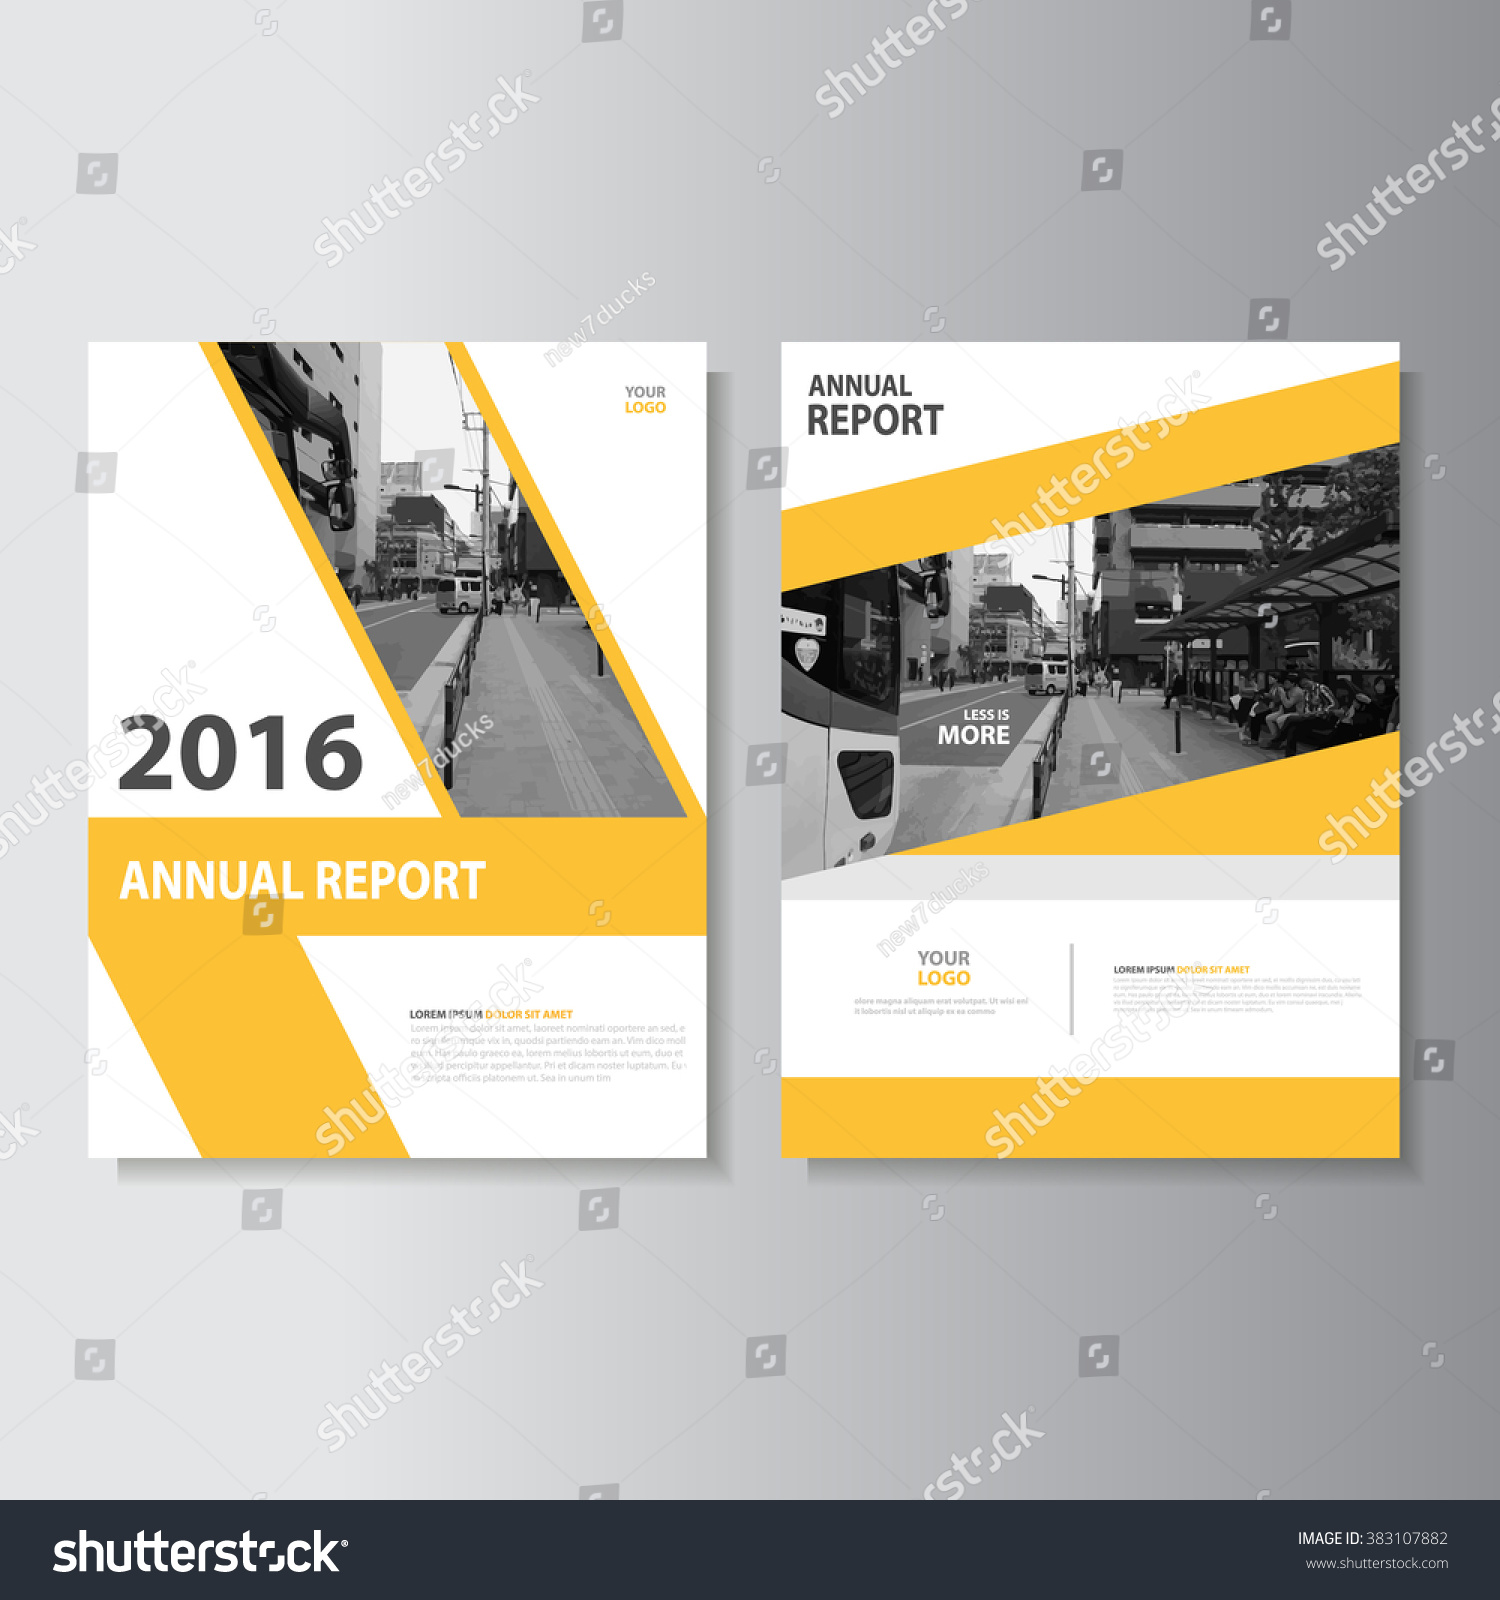 Royalty Free Yellow Annual Report Leaflet Brochure